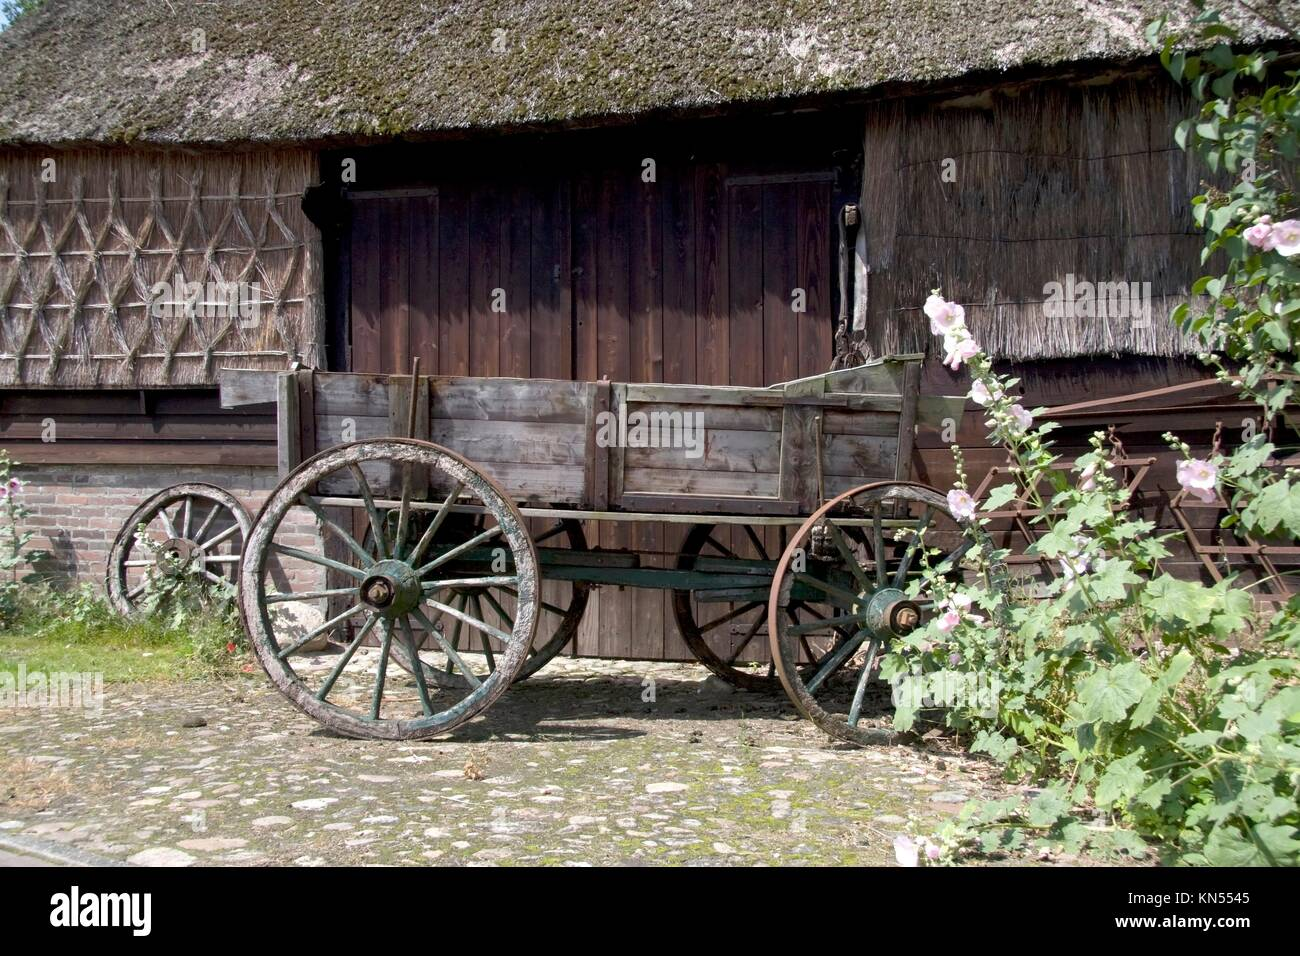 Farmers trolley stands for a farm in Gees, The Netherlands. - Stock Image